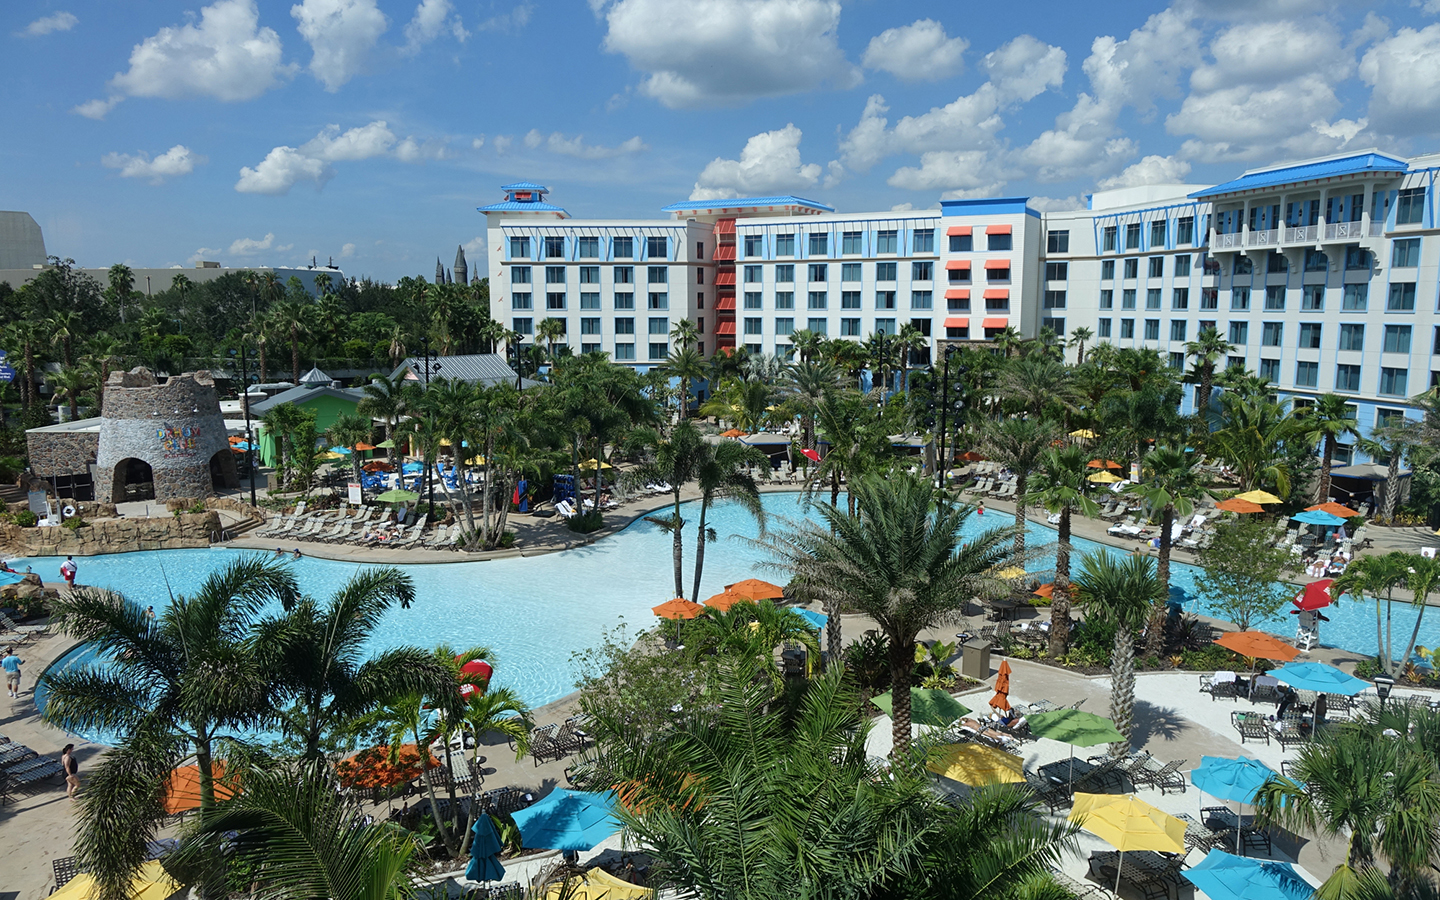 On-Site Hotels at Universal Orlando Resort